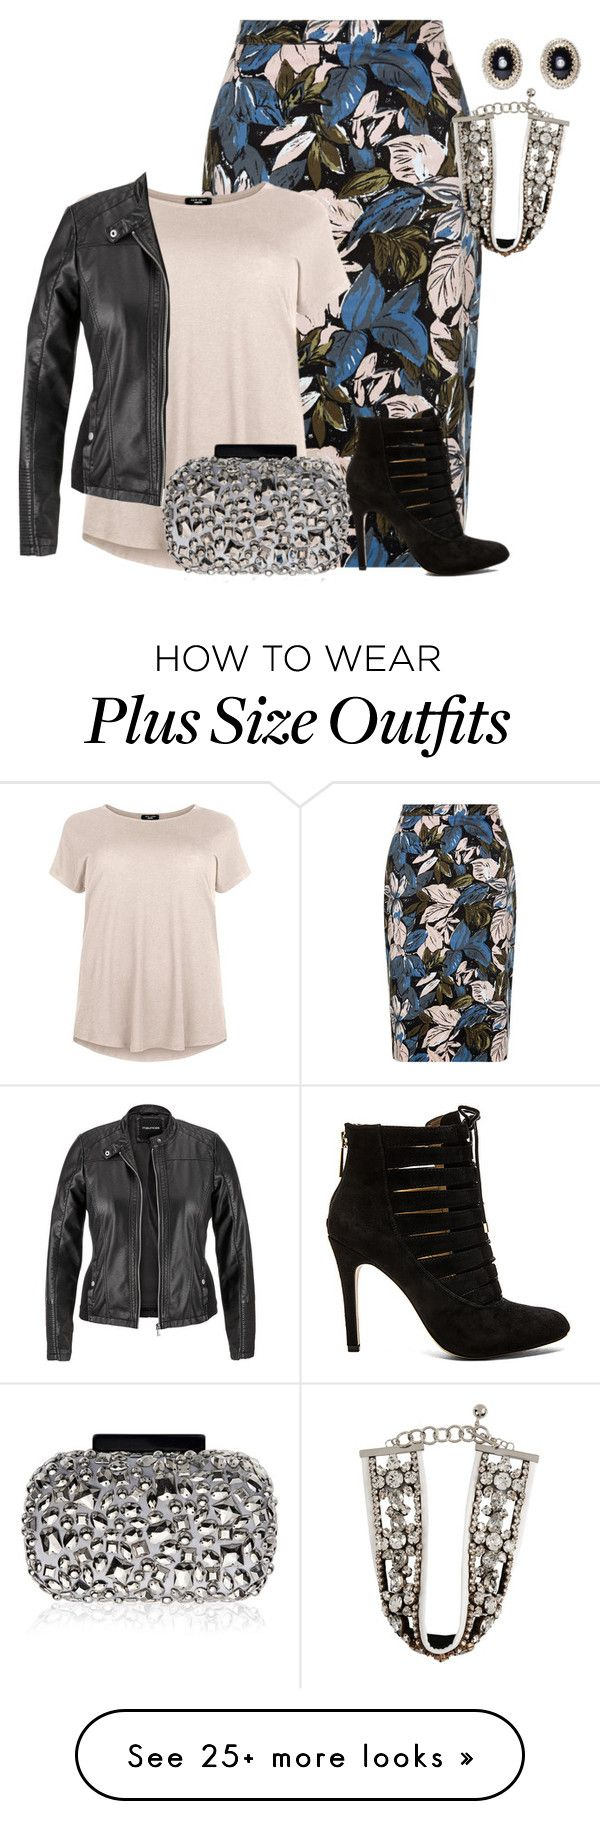 """plus size fall/winter night out"" by kristie-payne on Polyvore featuring SHOUROUK, maurices, BCBGeneration, Givenchy and Lipsy"